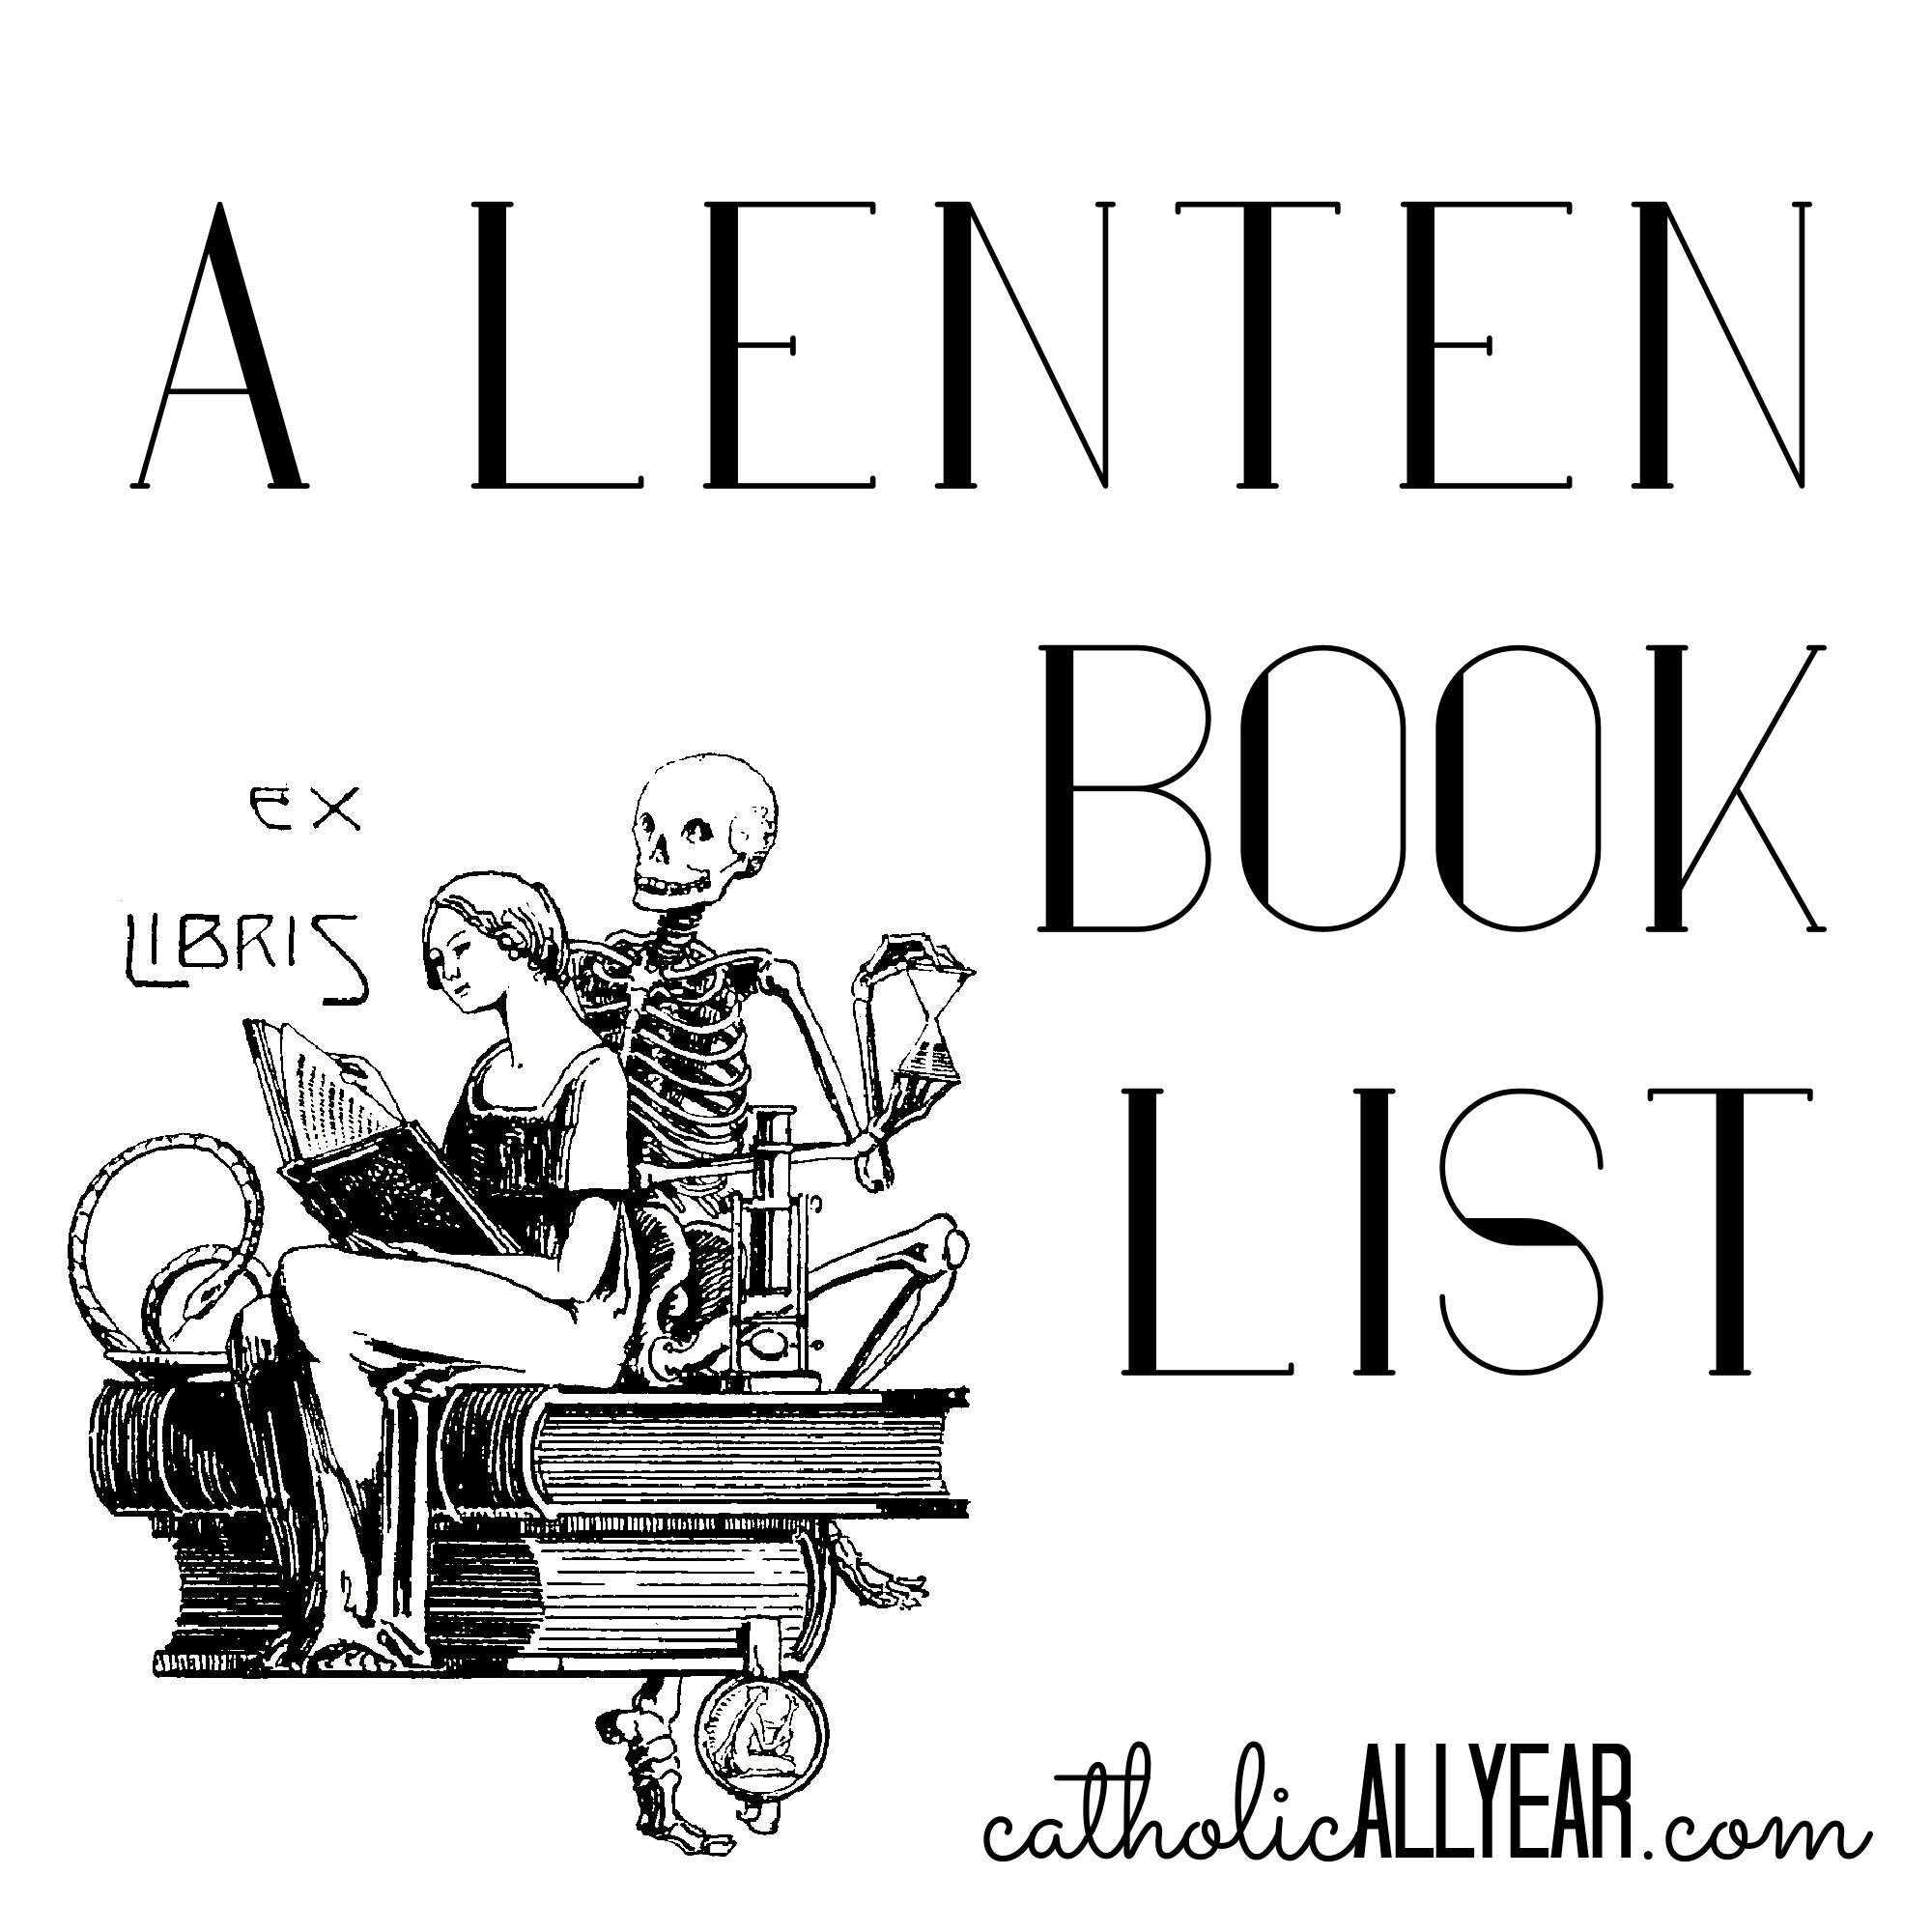 It's Never to Late to Start: A Lenten Book List